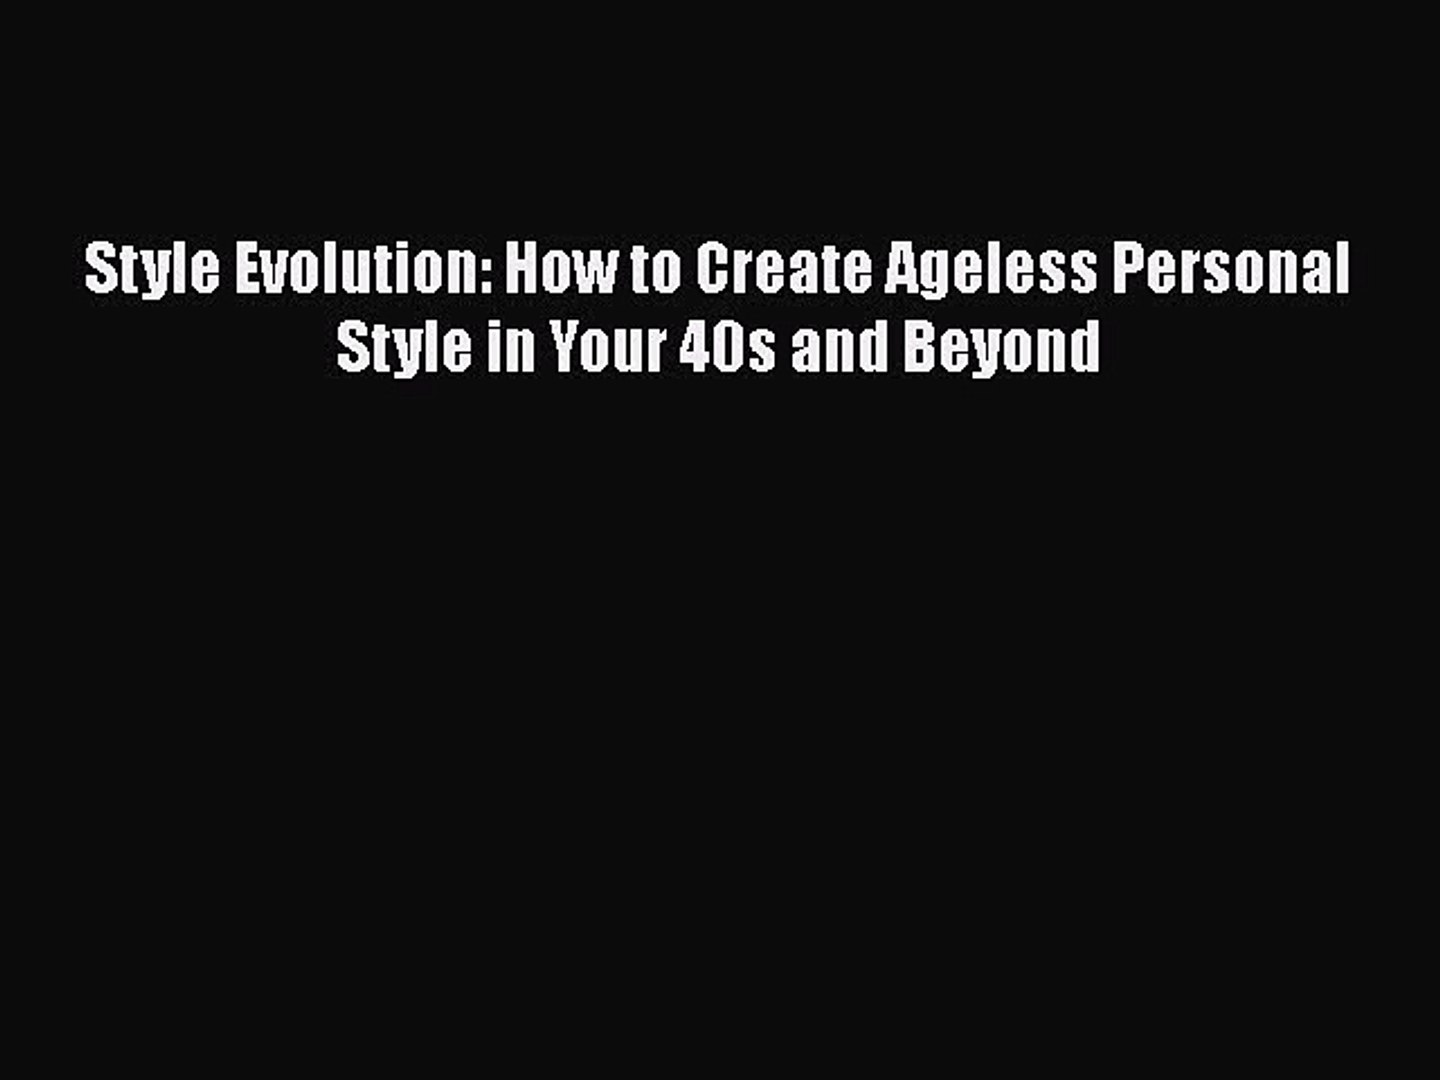 [PDF] Style Evolution: How to Create Ageless Personal Style in Your 40s and Beyond [Read] Full